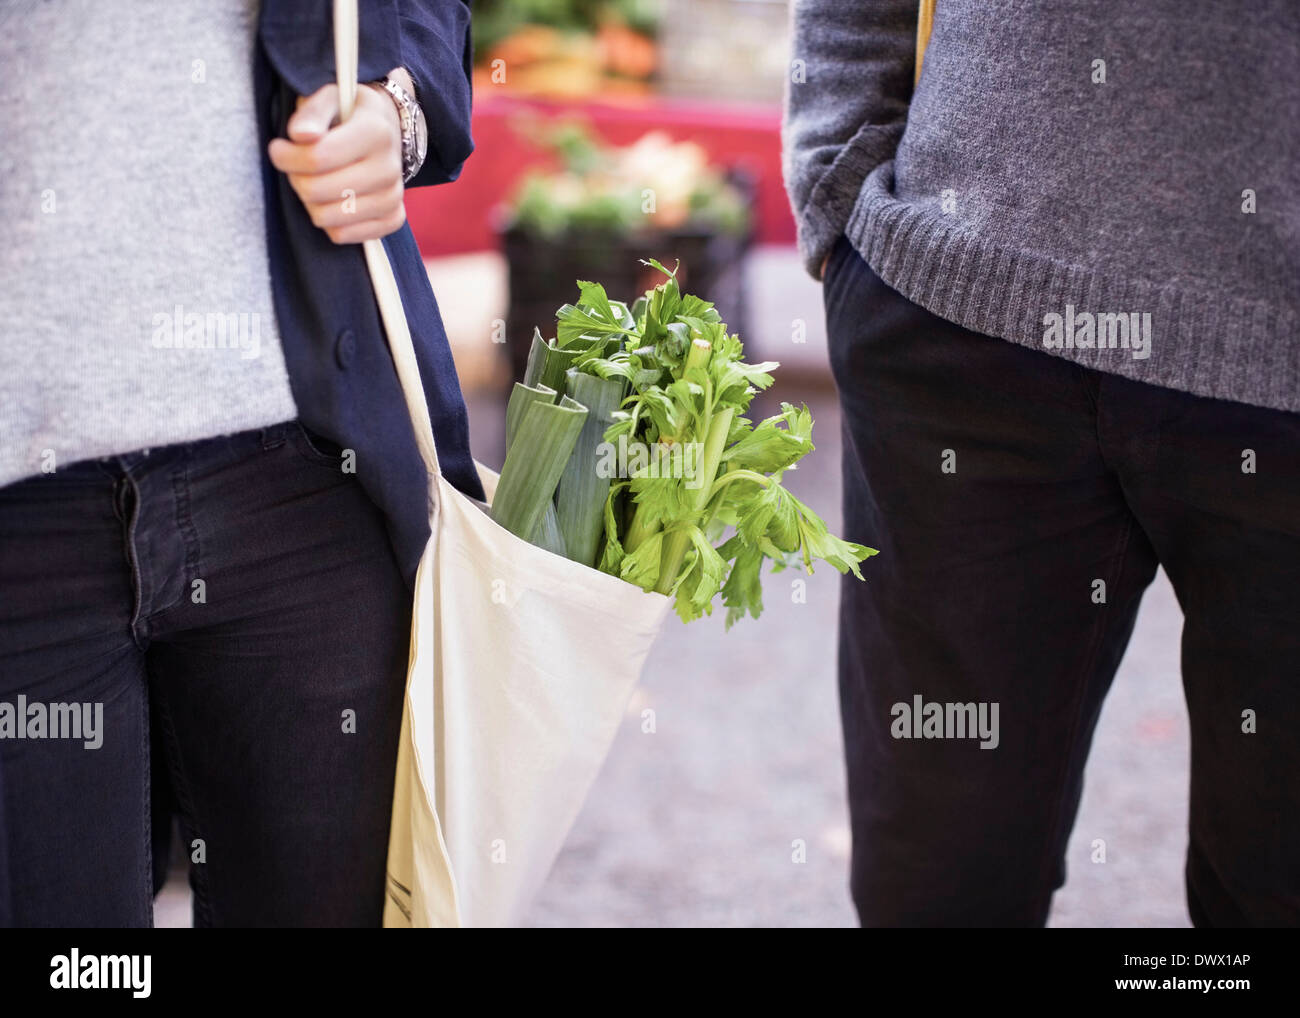 Midsection of couple with leafy vegetables outdoors - Stock Image